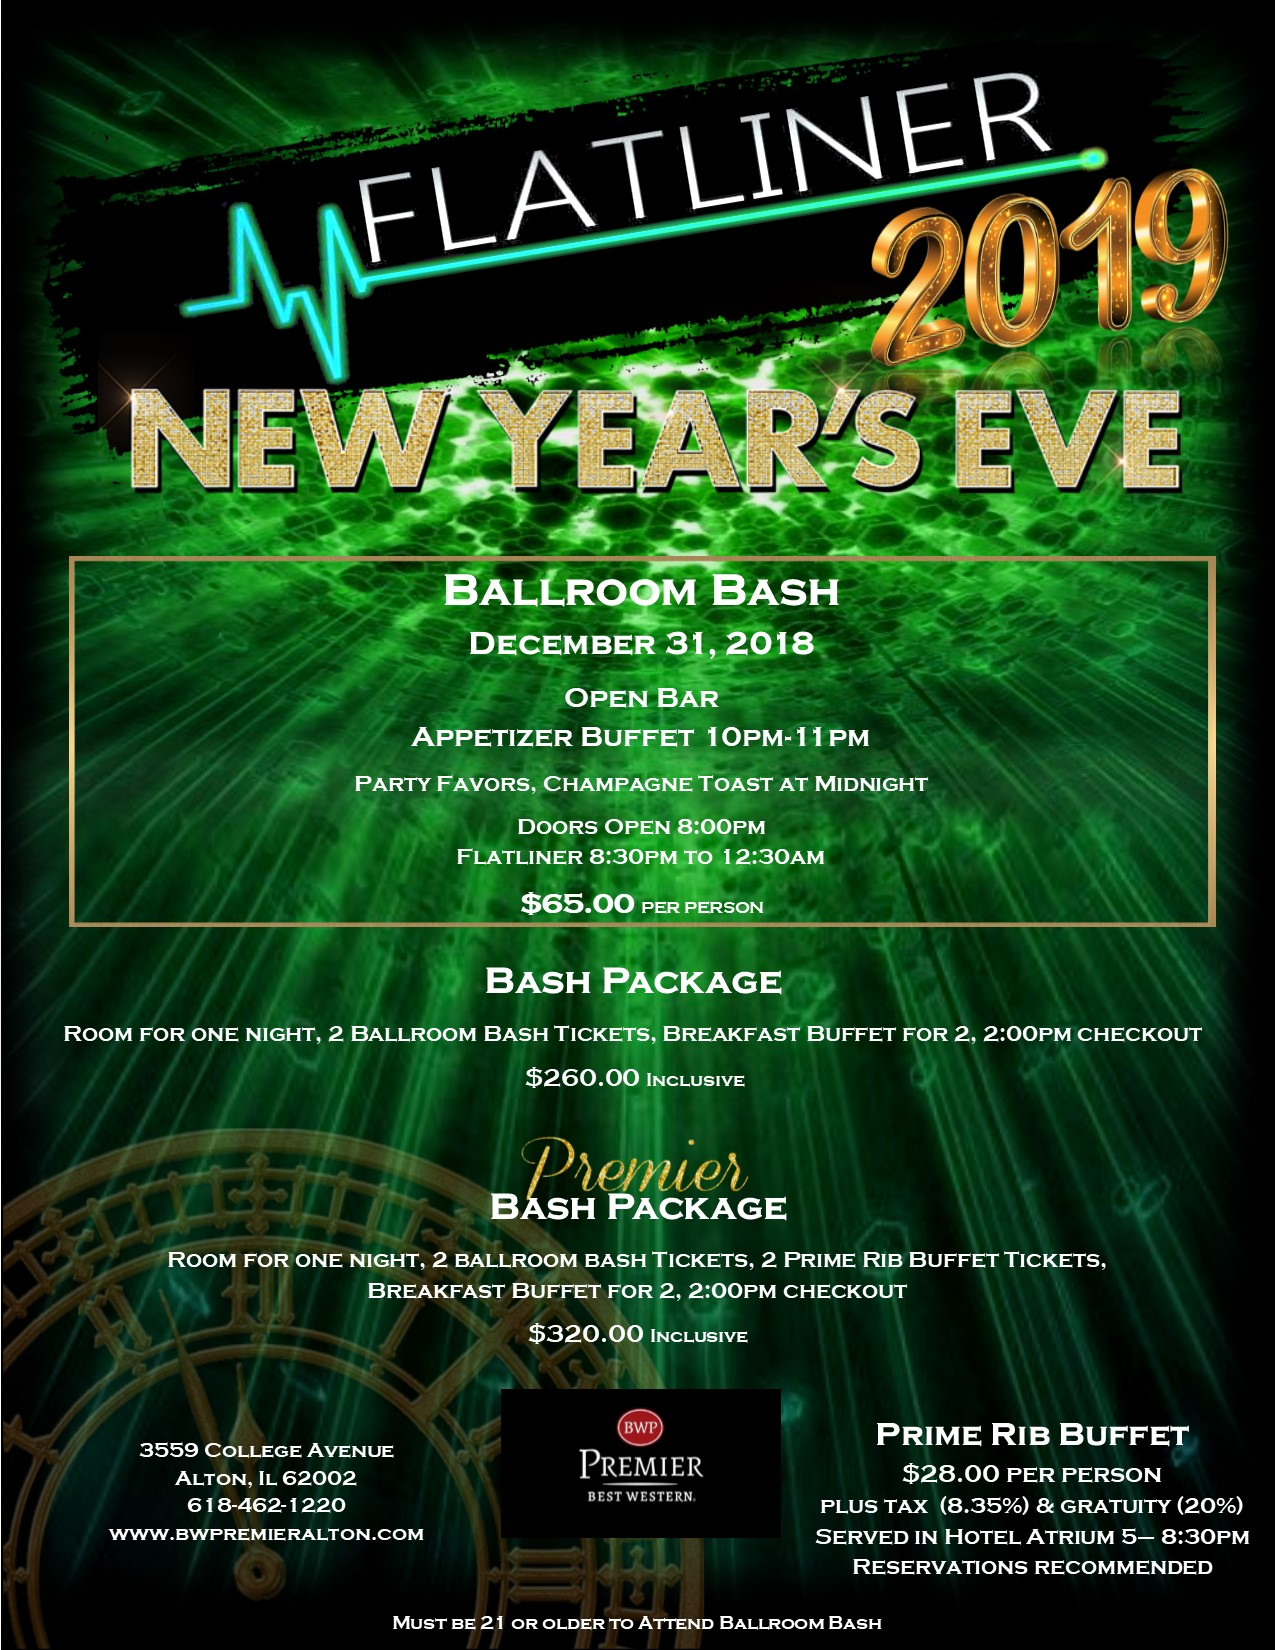 New Year's Eve, NYE Alton IL, New year's eve alton il, NYE 2019, New Year's Eve events near St. Louis, New Year's Eve Dinner, New Year's Eve show,